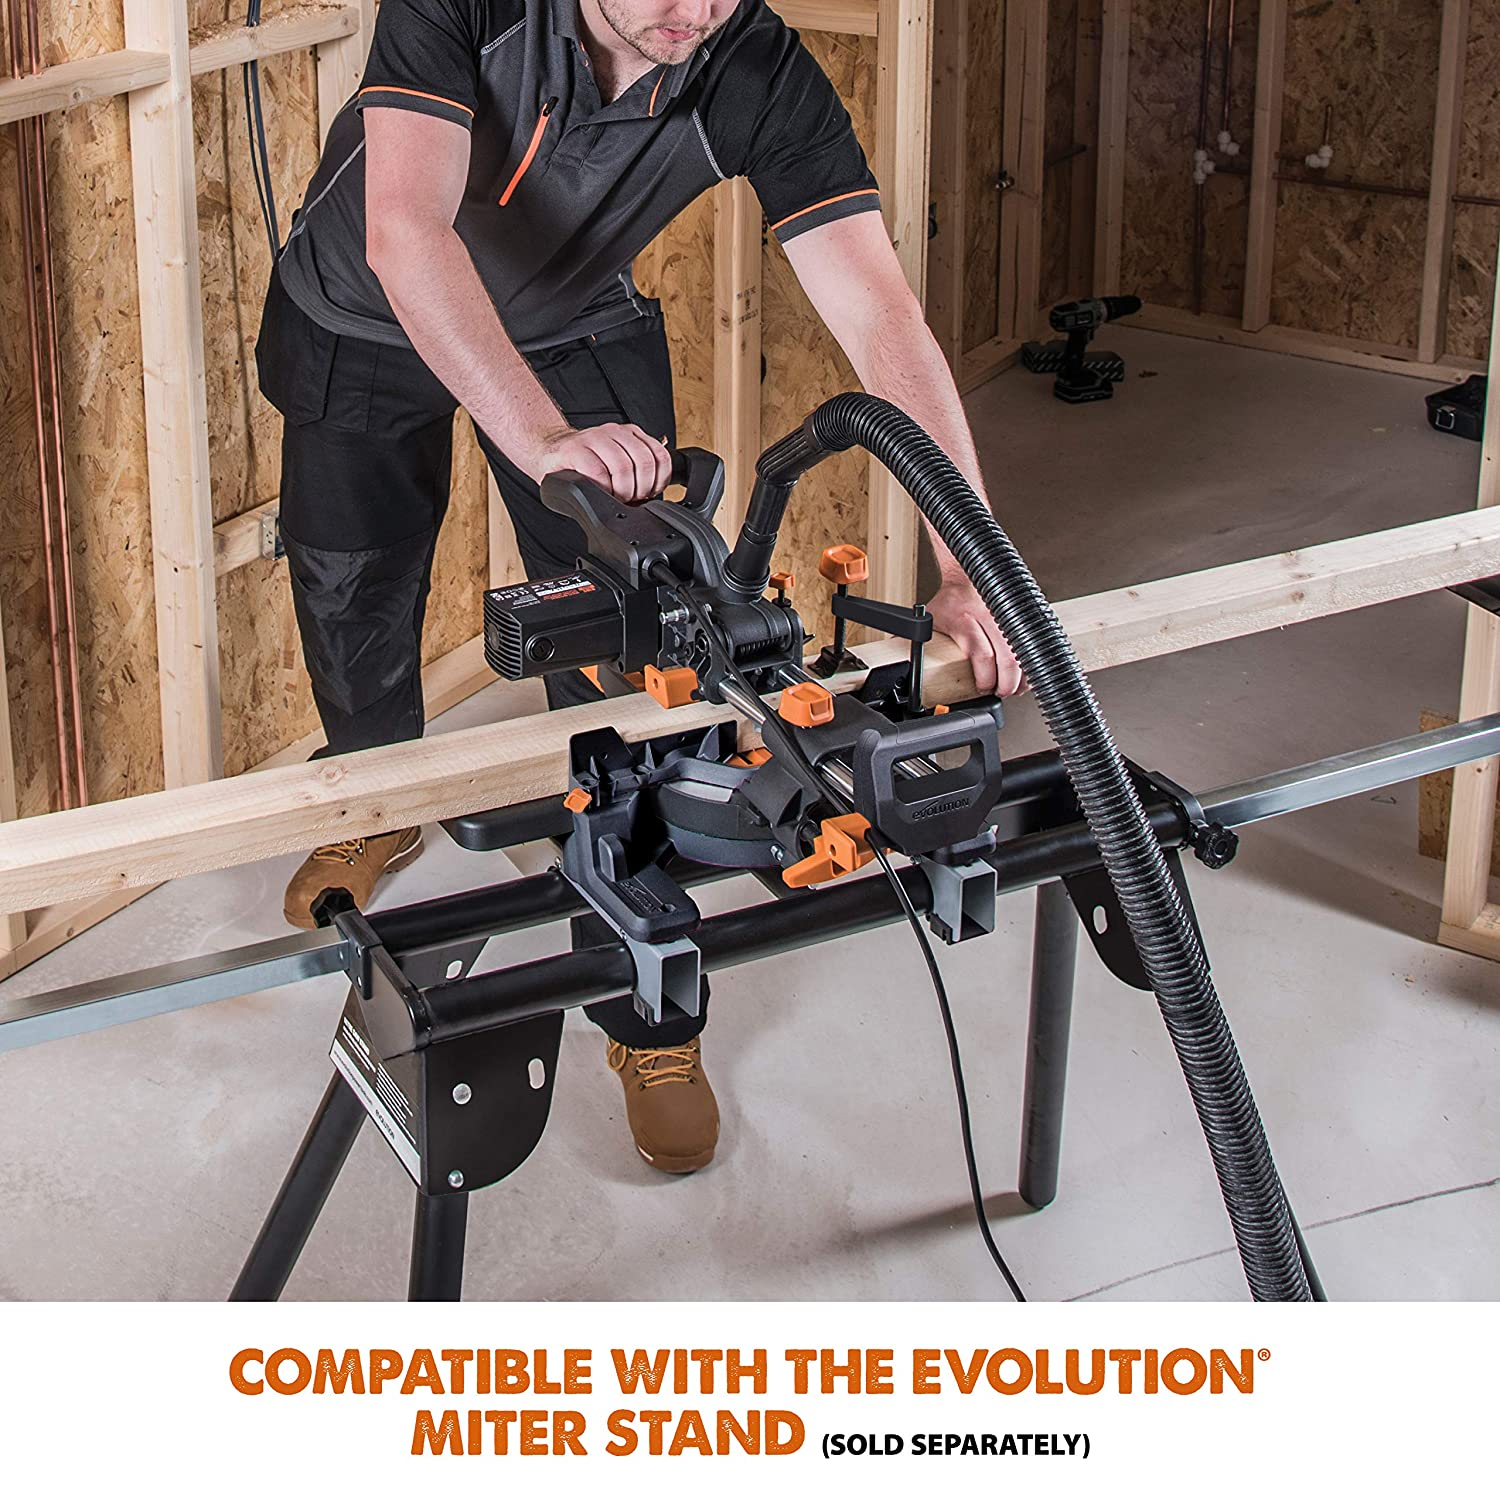 Evolution Power Tools Multi-Material Compound Sliding Miter Saw